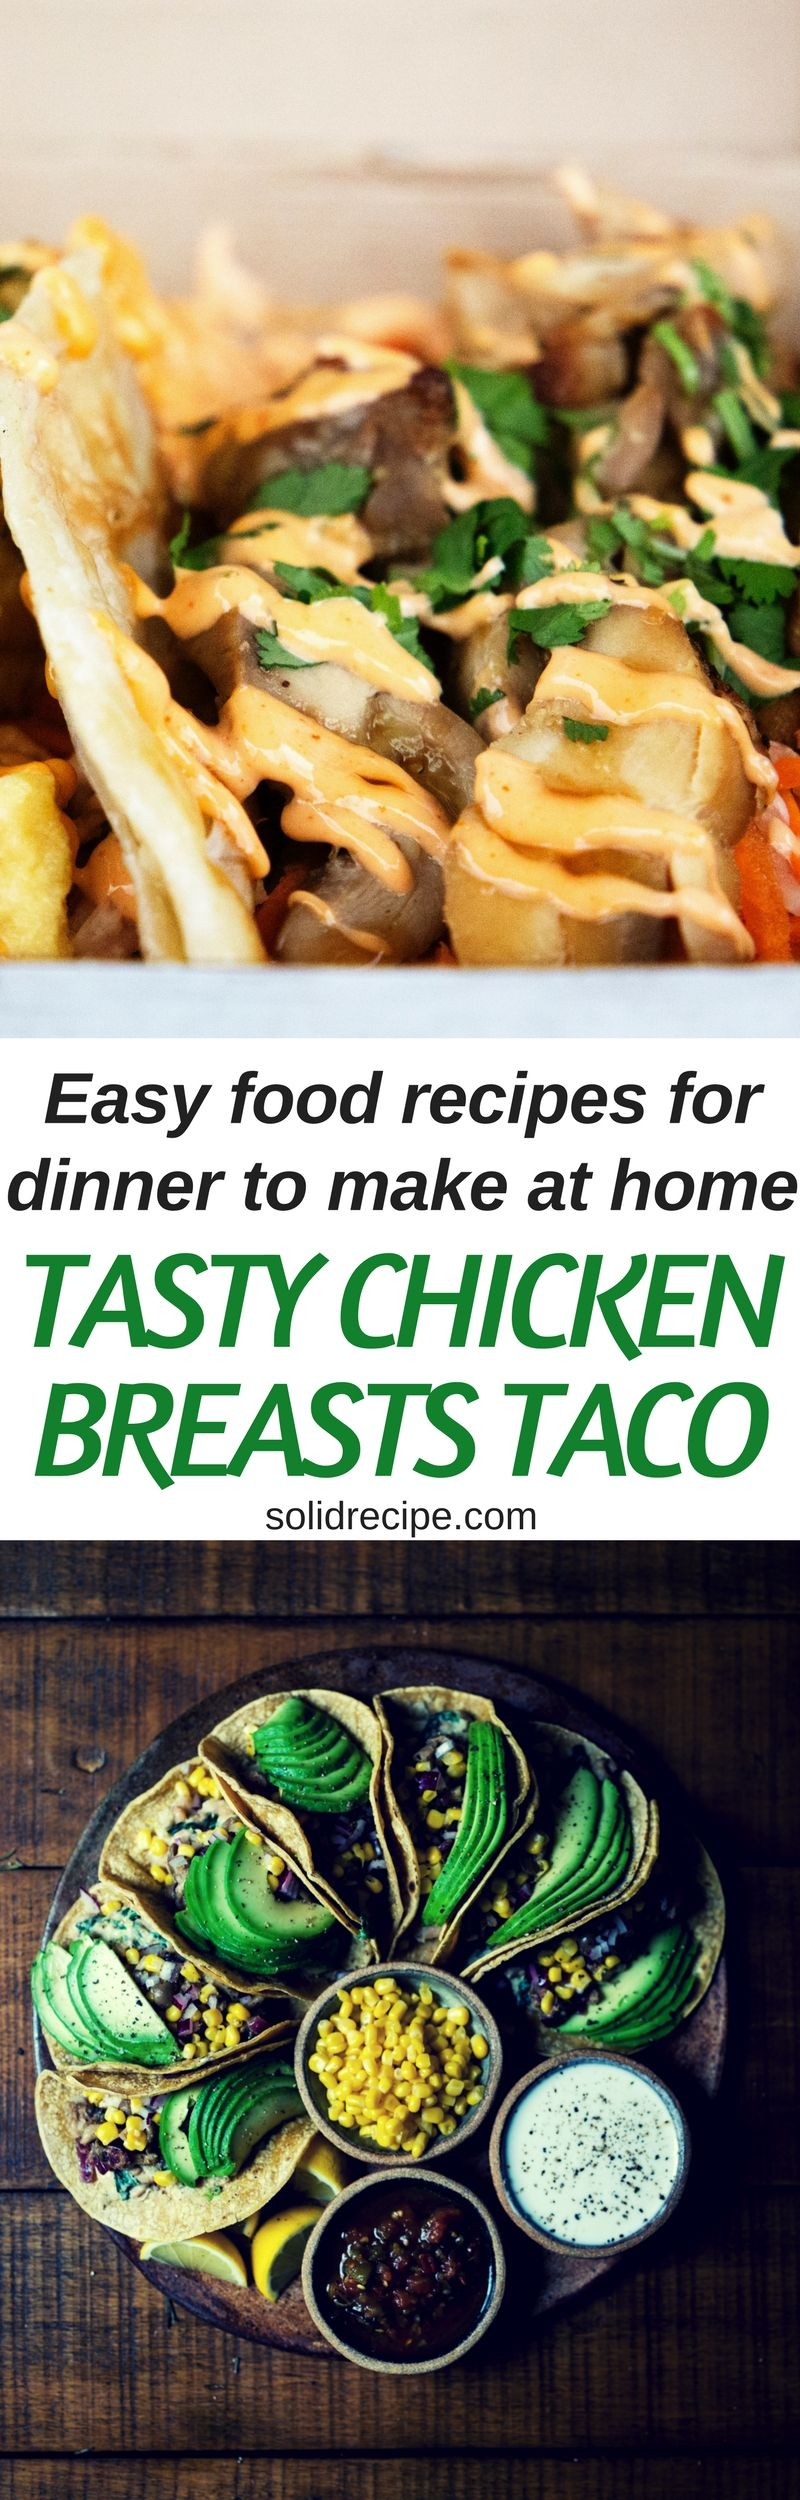 Tasty chicken breasts taco cooking videos easy food recipes for tasty chicken breasts taco cooking videos easy food recipes for dinner to make at home not always the photos matched the recipe forumfinder Gallery